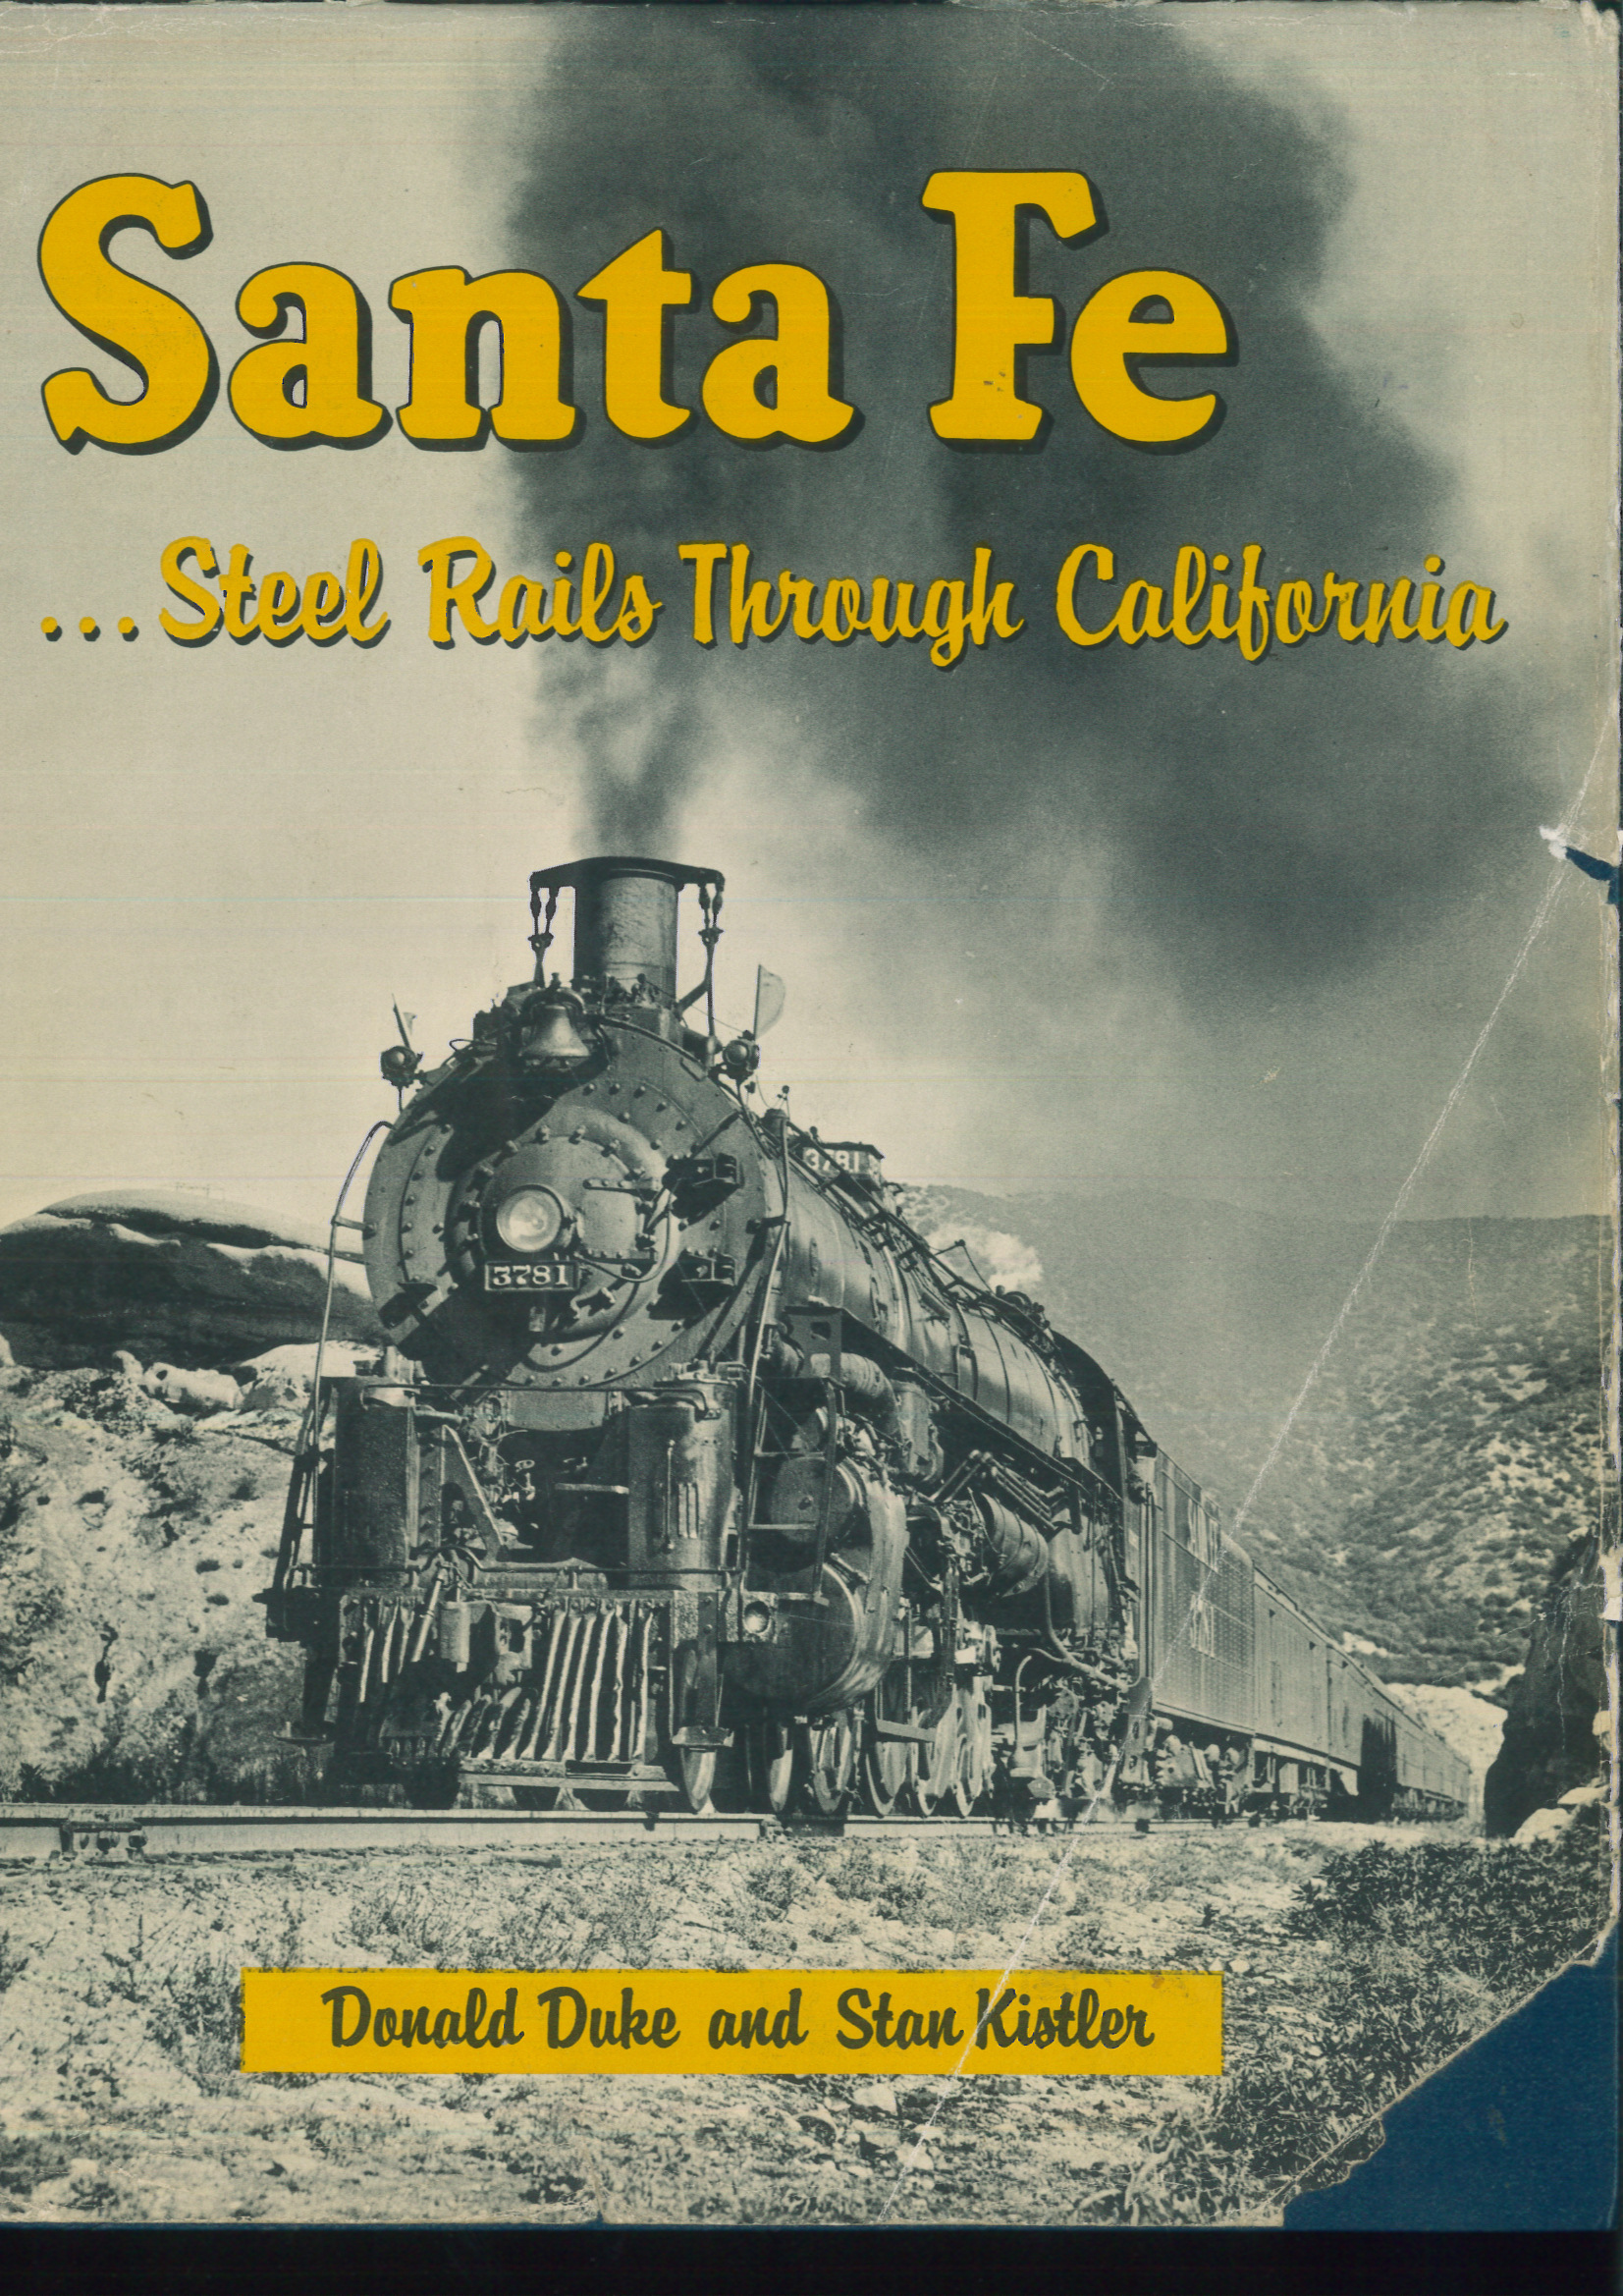 Santa Fe...Steel Rails Through California  - Donals Duke + Stan Kistler | günstig bestellen bei Modelleisenbahn Center  MCS Vertriebs GmbH